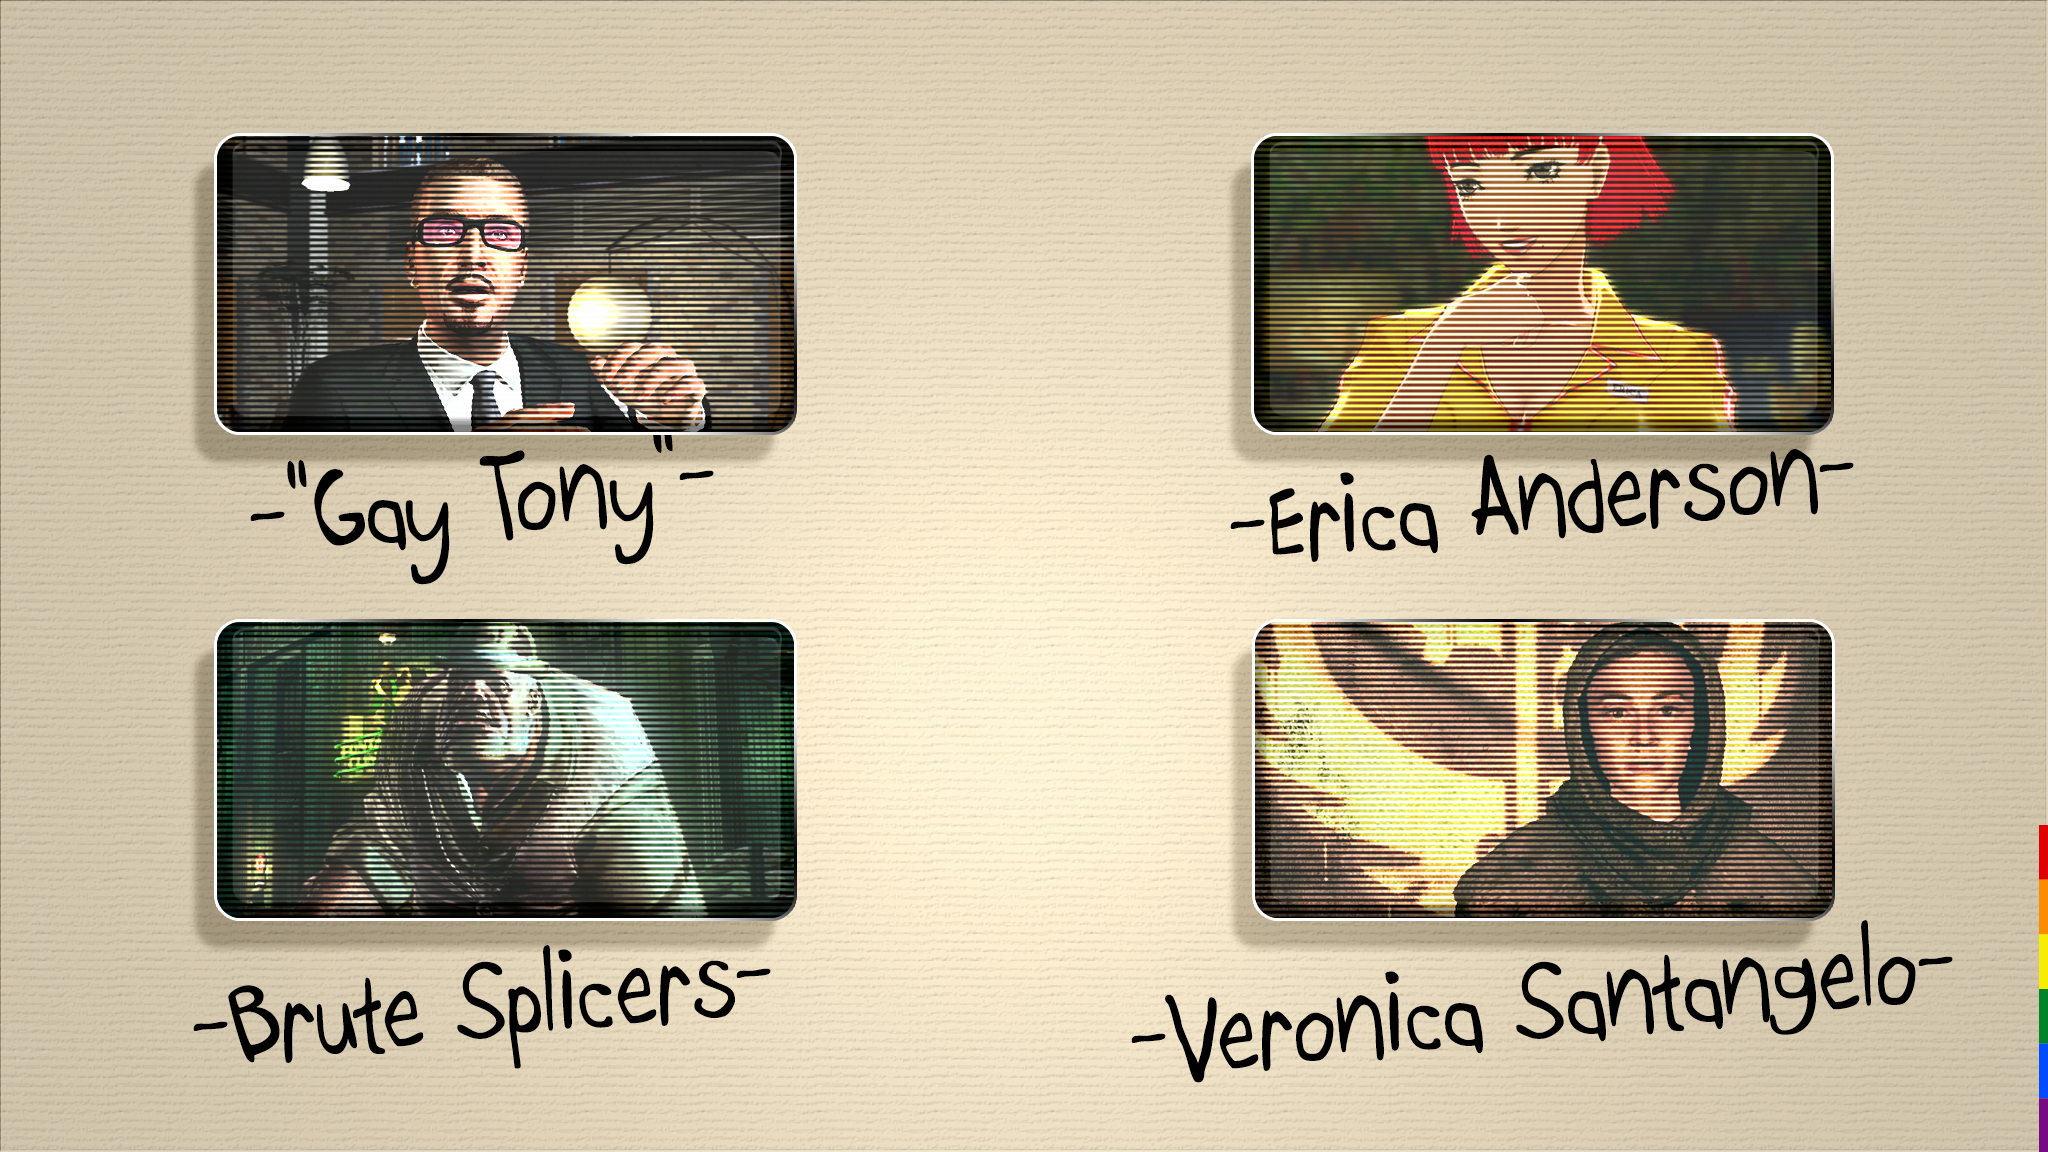 Renowned LGBT Characters, Gay Tony, Erica Anderson, Brute Splicers, Veronica Santangelo